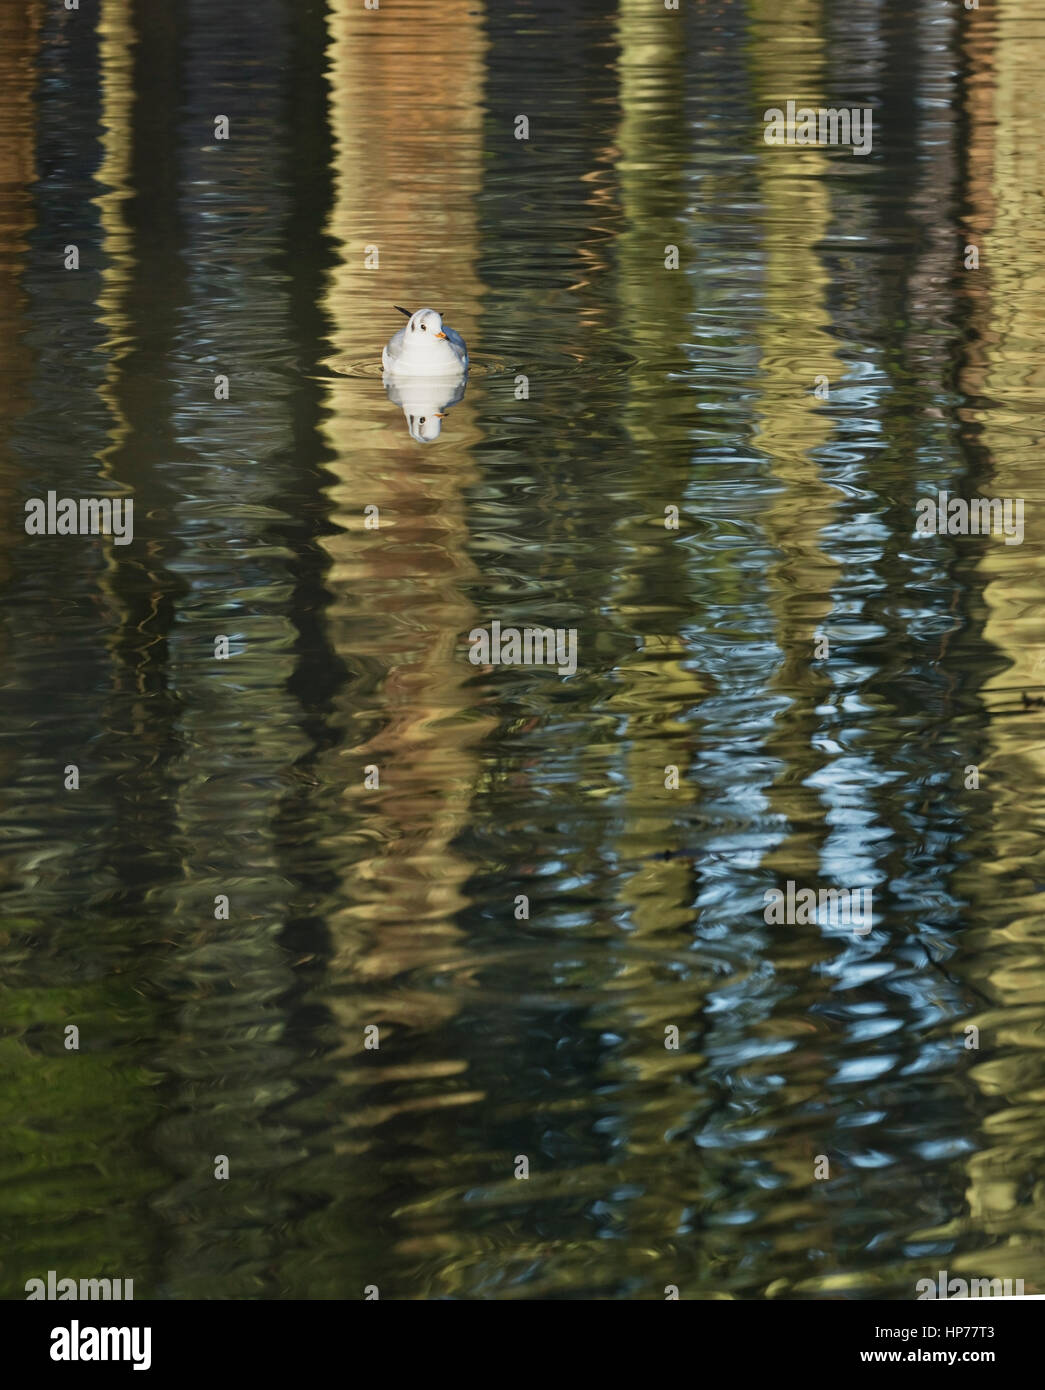 Black-headed gull on pattern formed by reflections of tree trunks on water - Stock Image